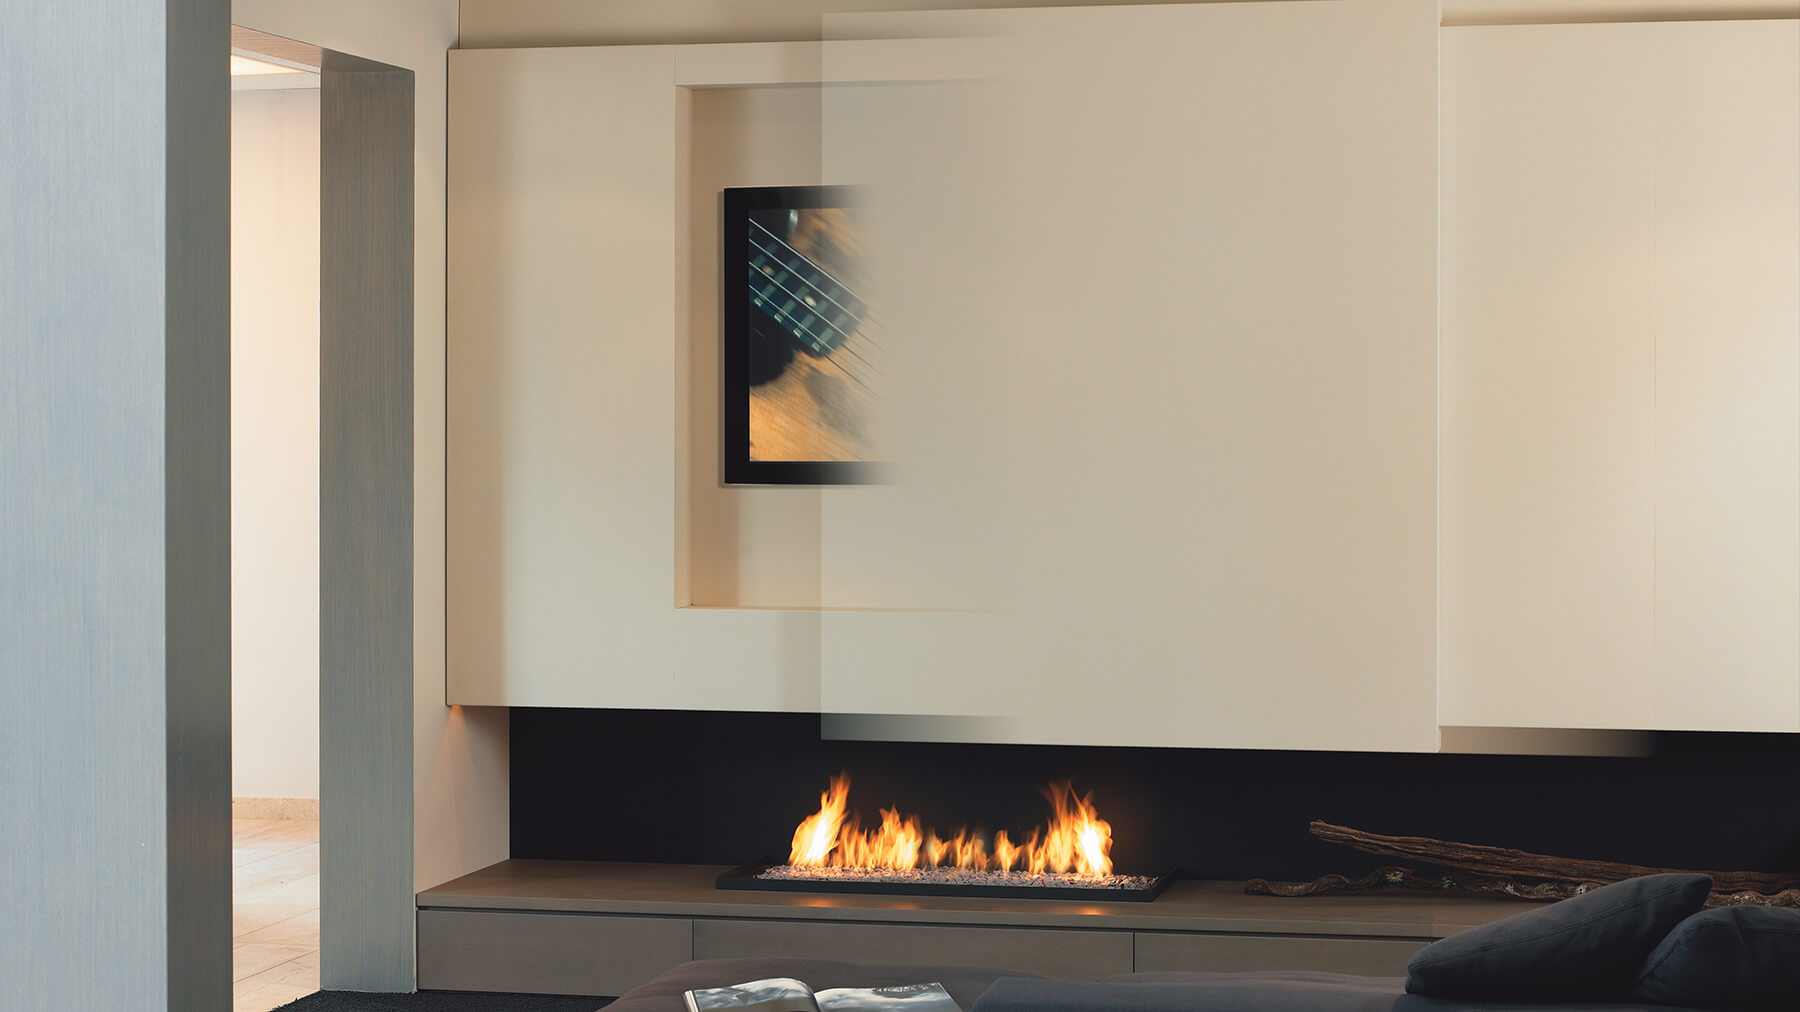 Design Wall Fireplace Tv : Bespoke fireplaces i tv above fireplace designer